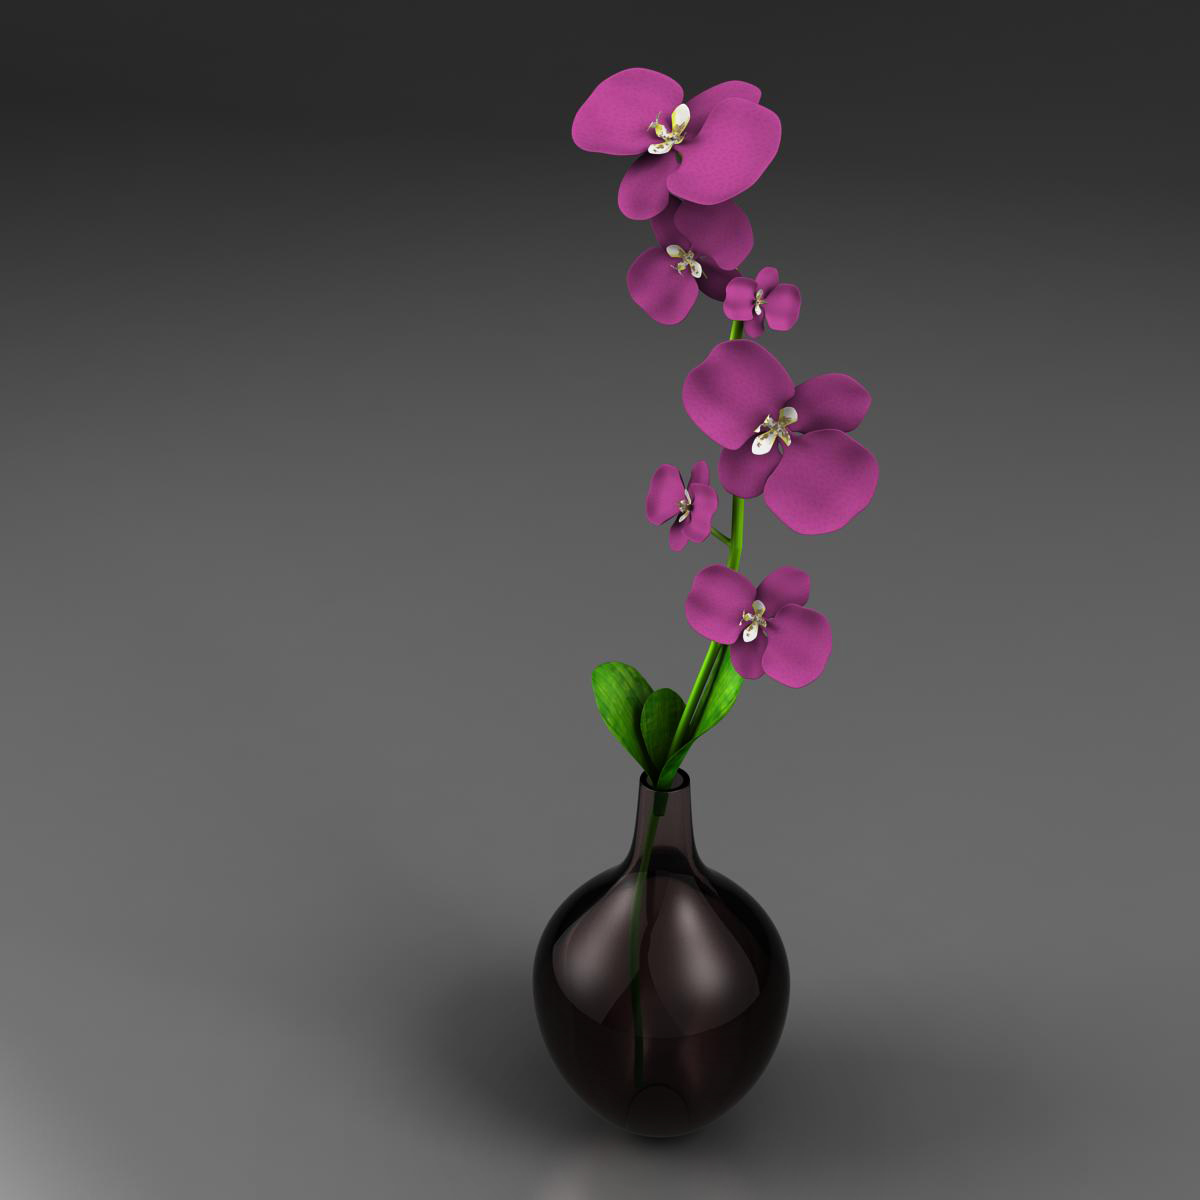 flower base 3d modelo 3ds max fbx ma mb obj 158095